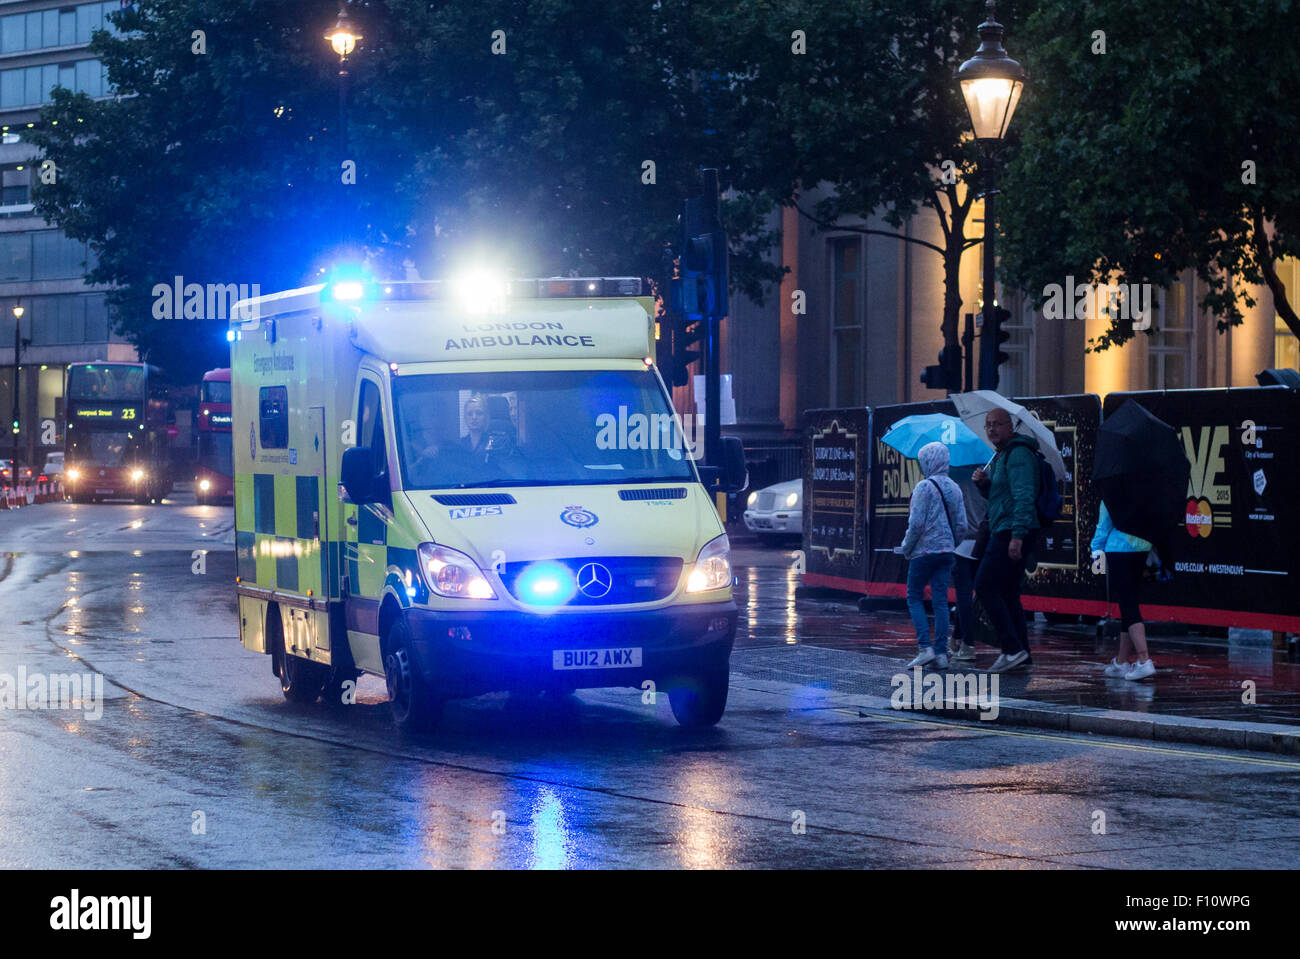 London Ambulance Service responding in bad weather - Stock Image